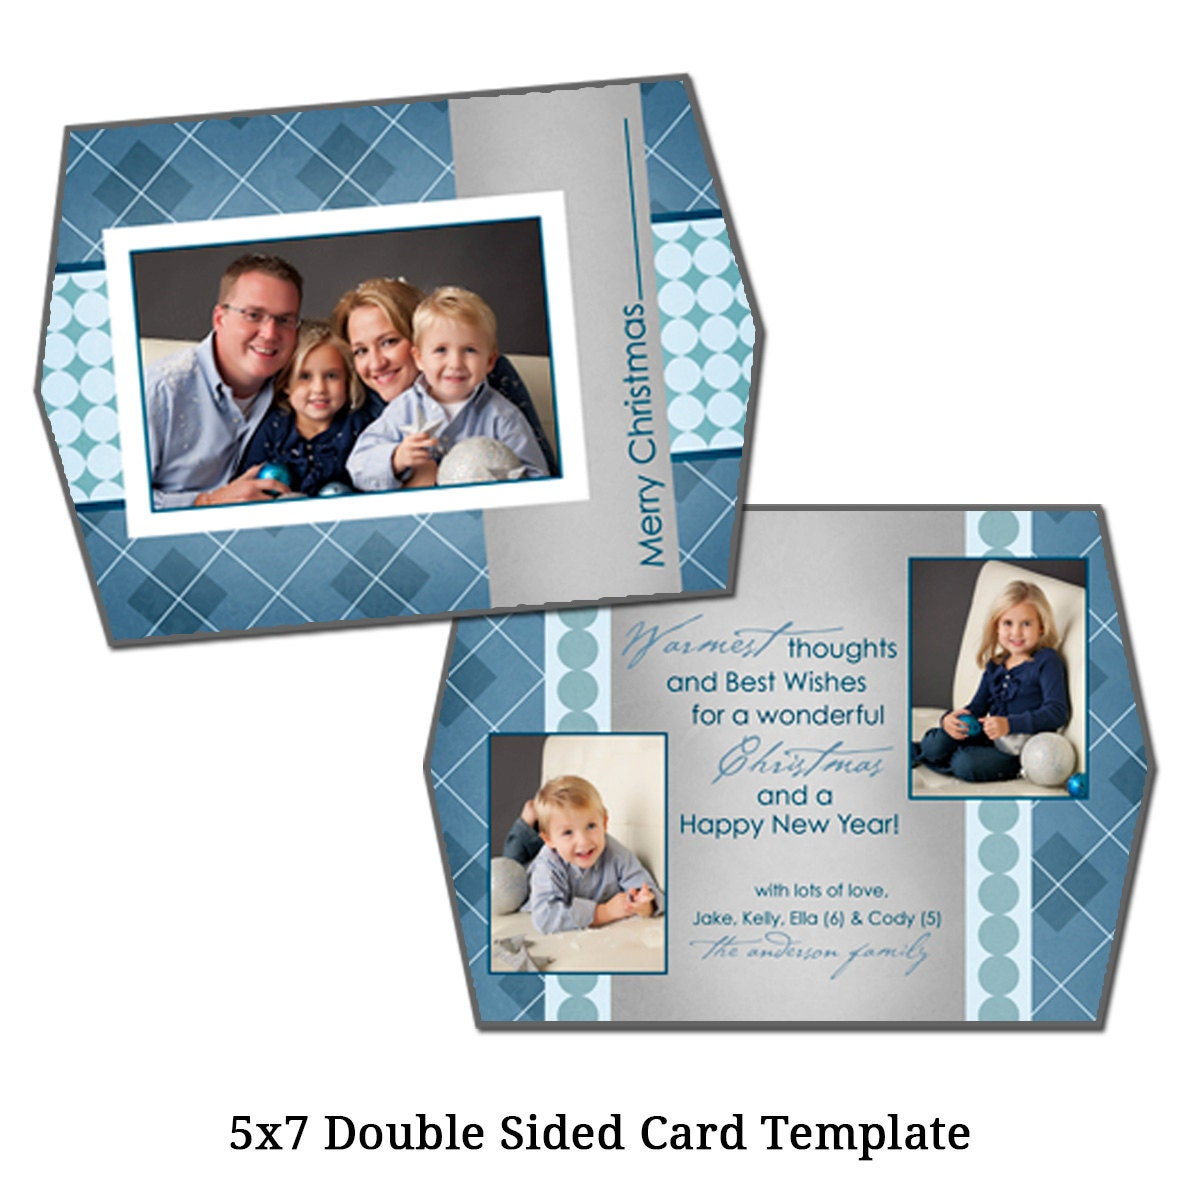 5x7 double sided christmas card template by vgallerydesigns. Black Bedroom Furniture Sets. Home Design Ideas